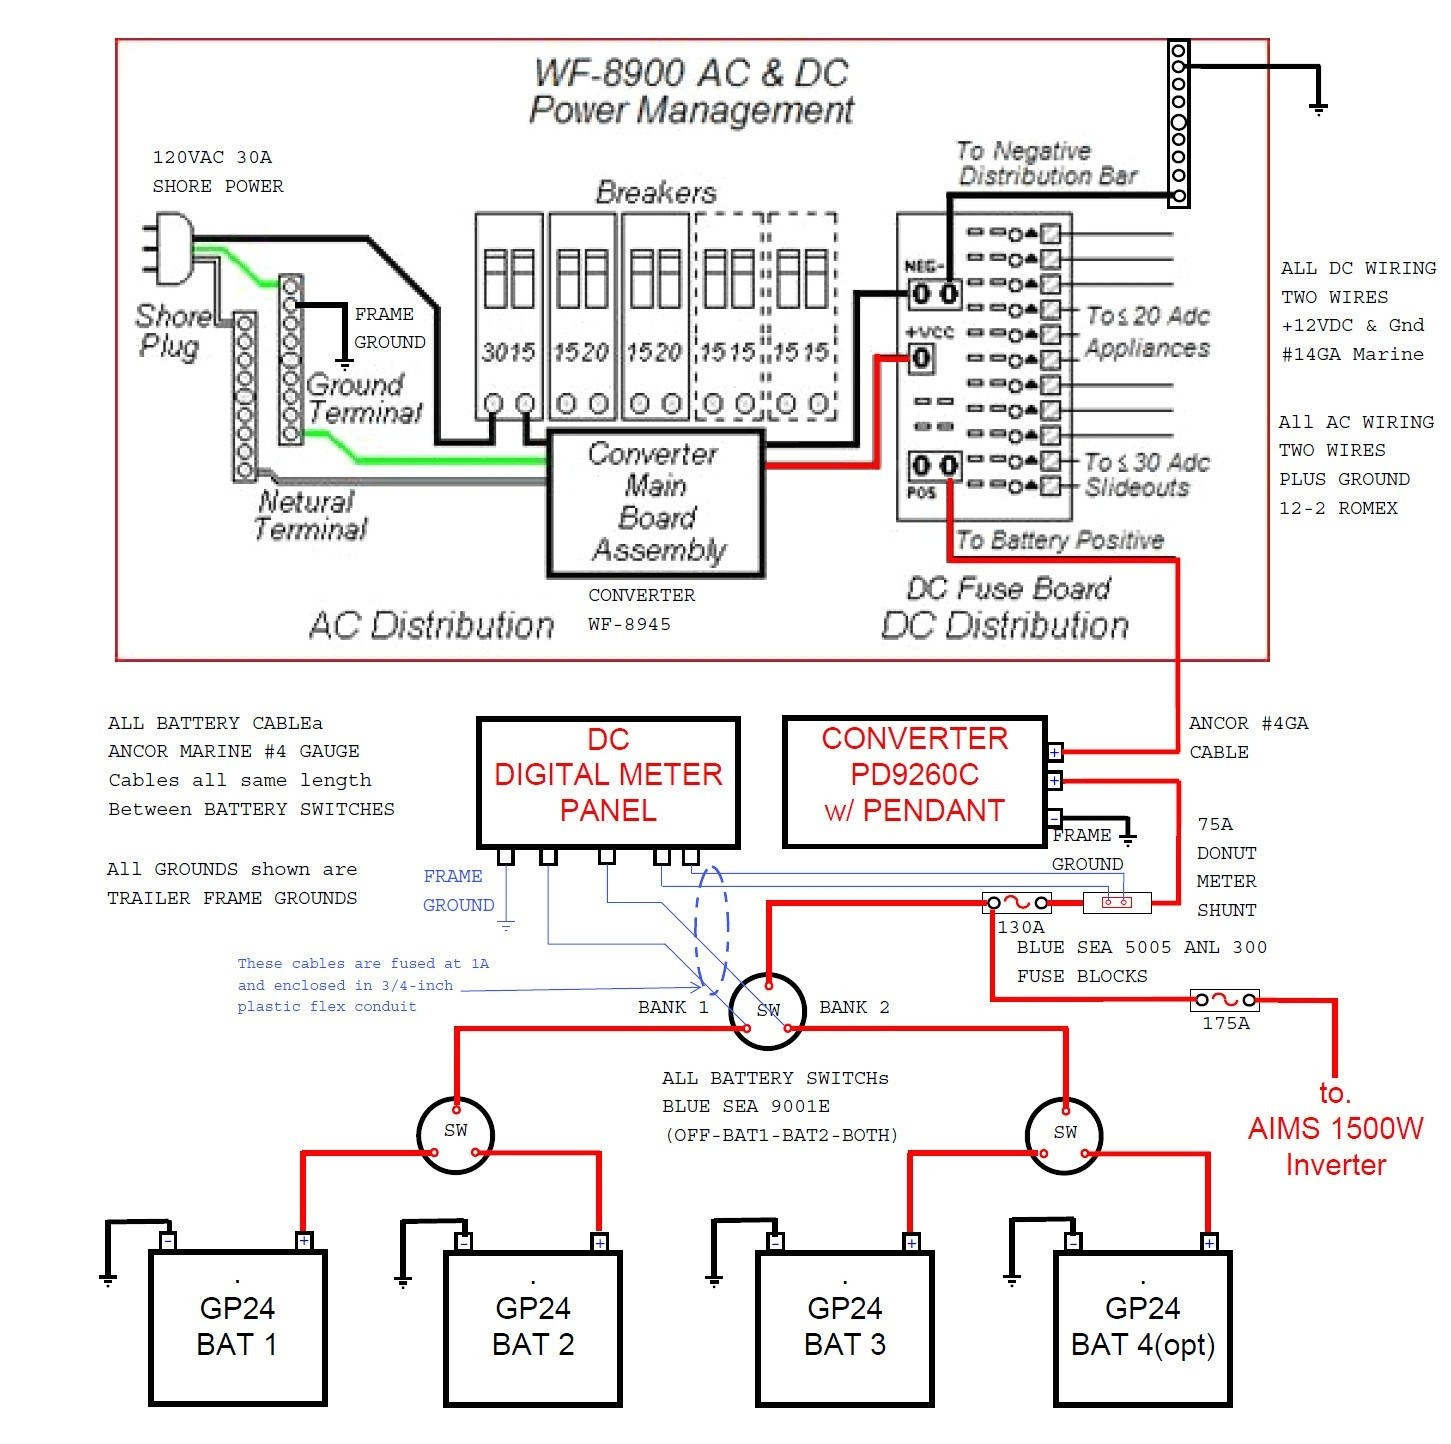 Jayco Wiring Harness - Wiring Diagram Detailed - Jayco Trailer Wiring Diagram